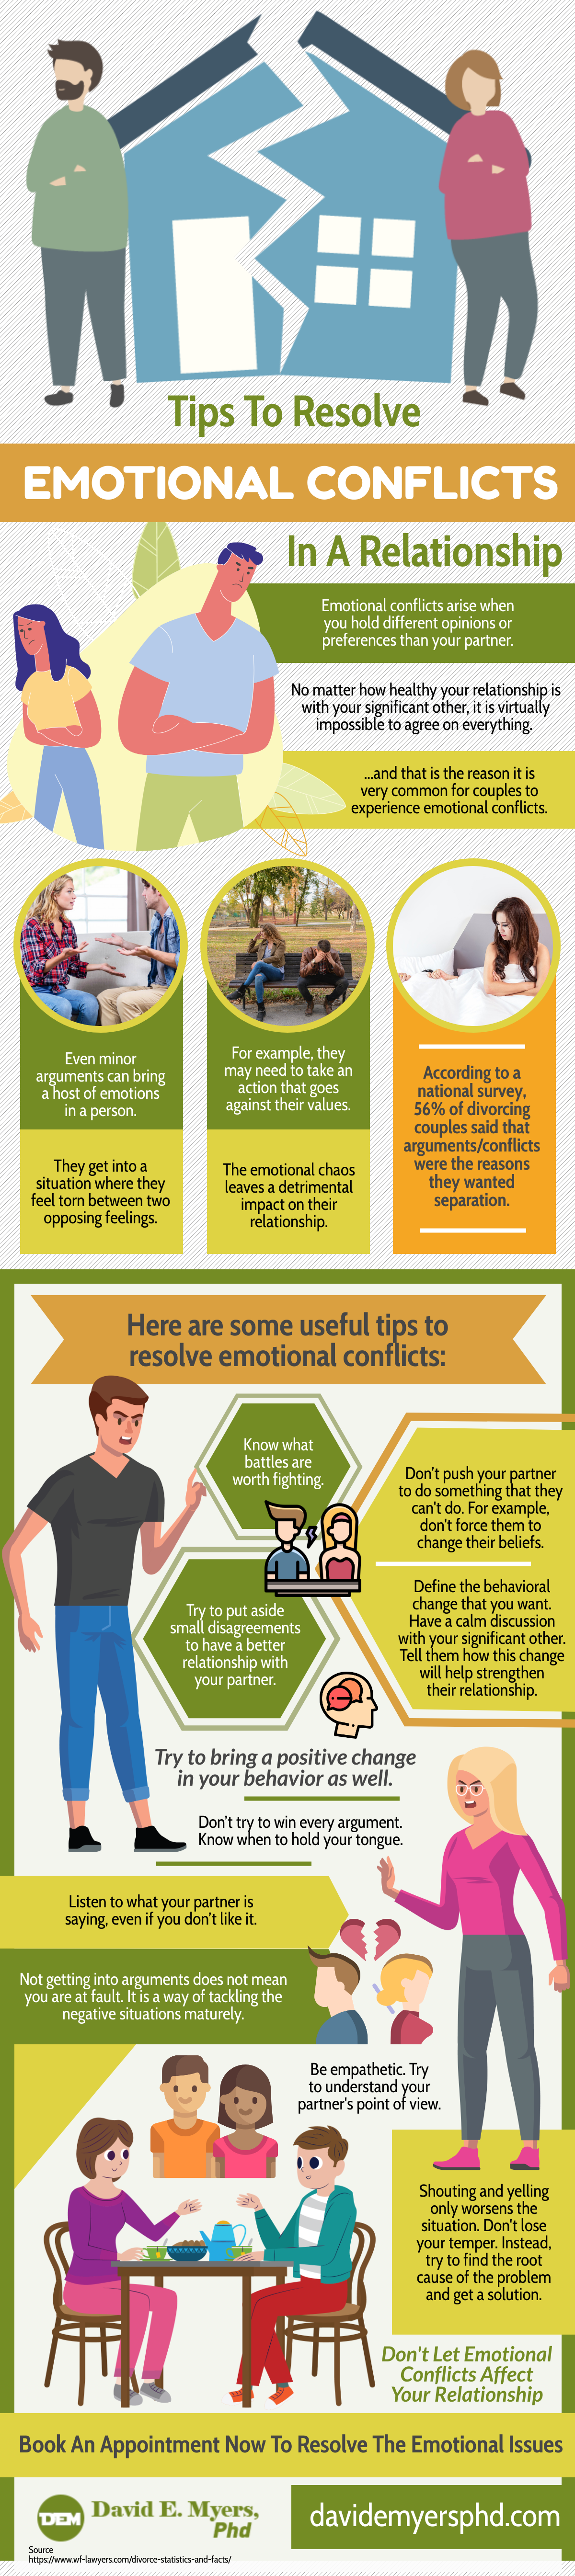 Image showing infographic psychologist in Gardendale